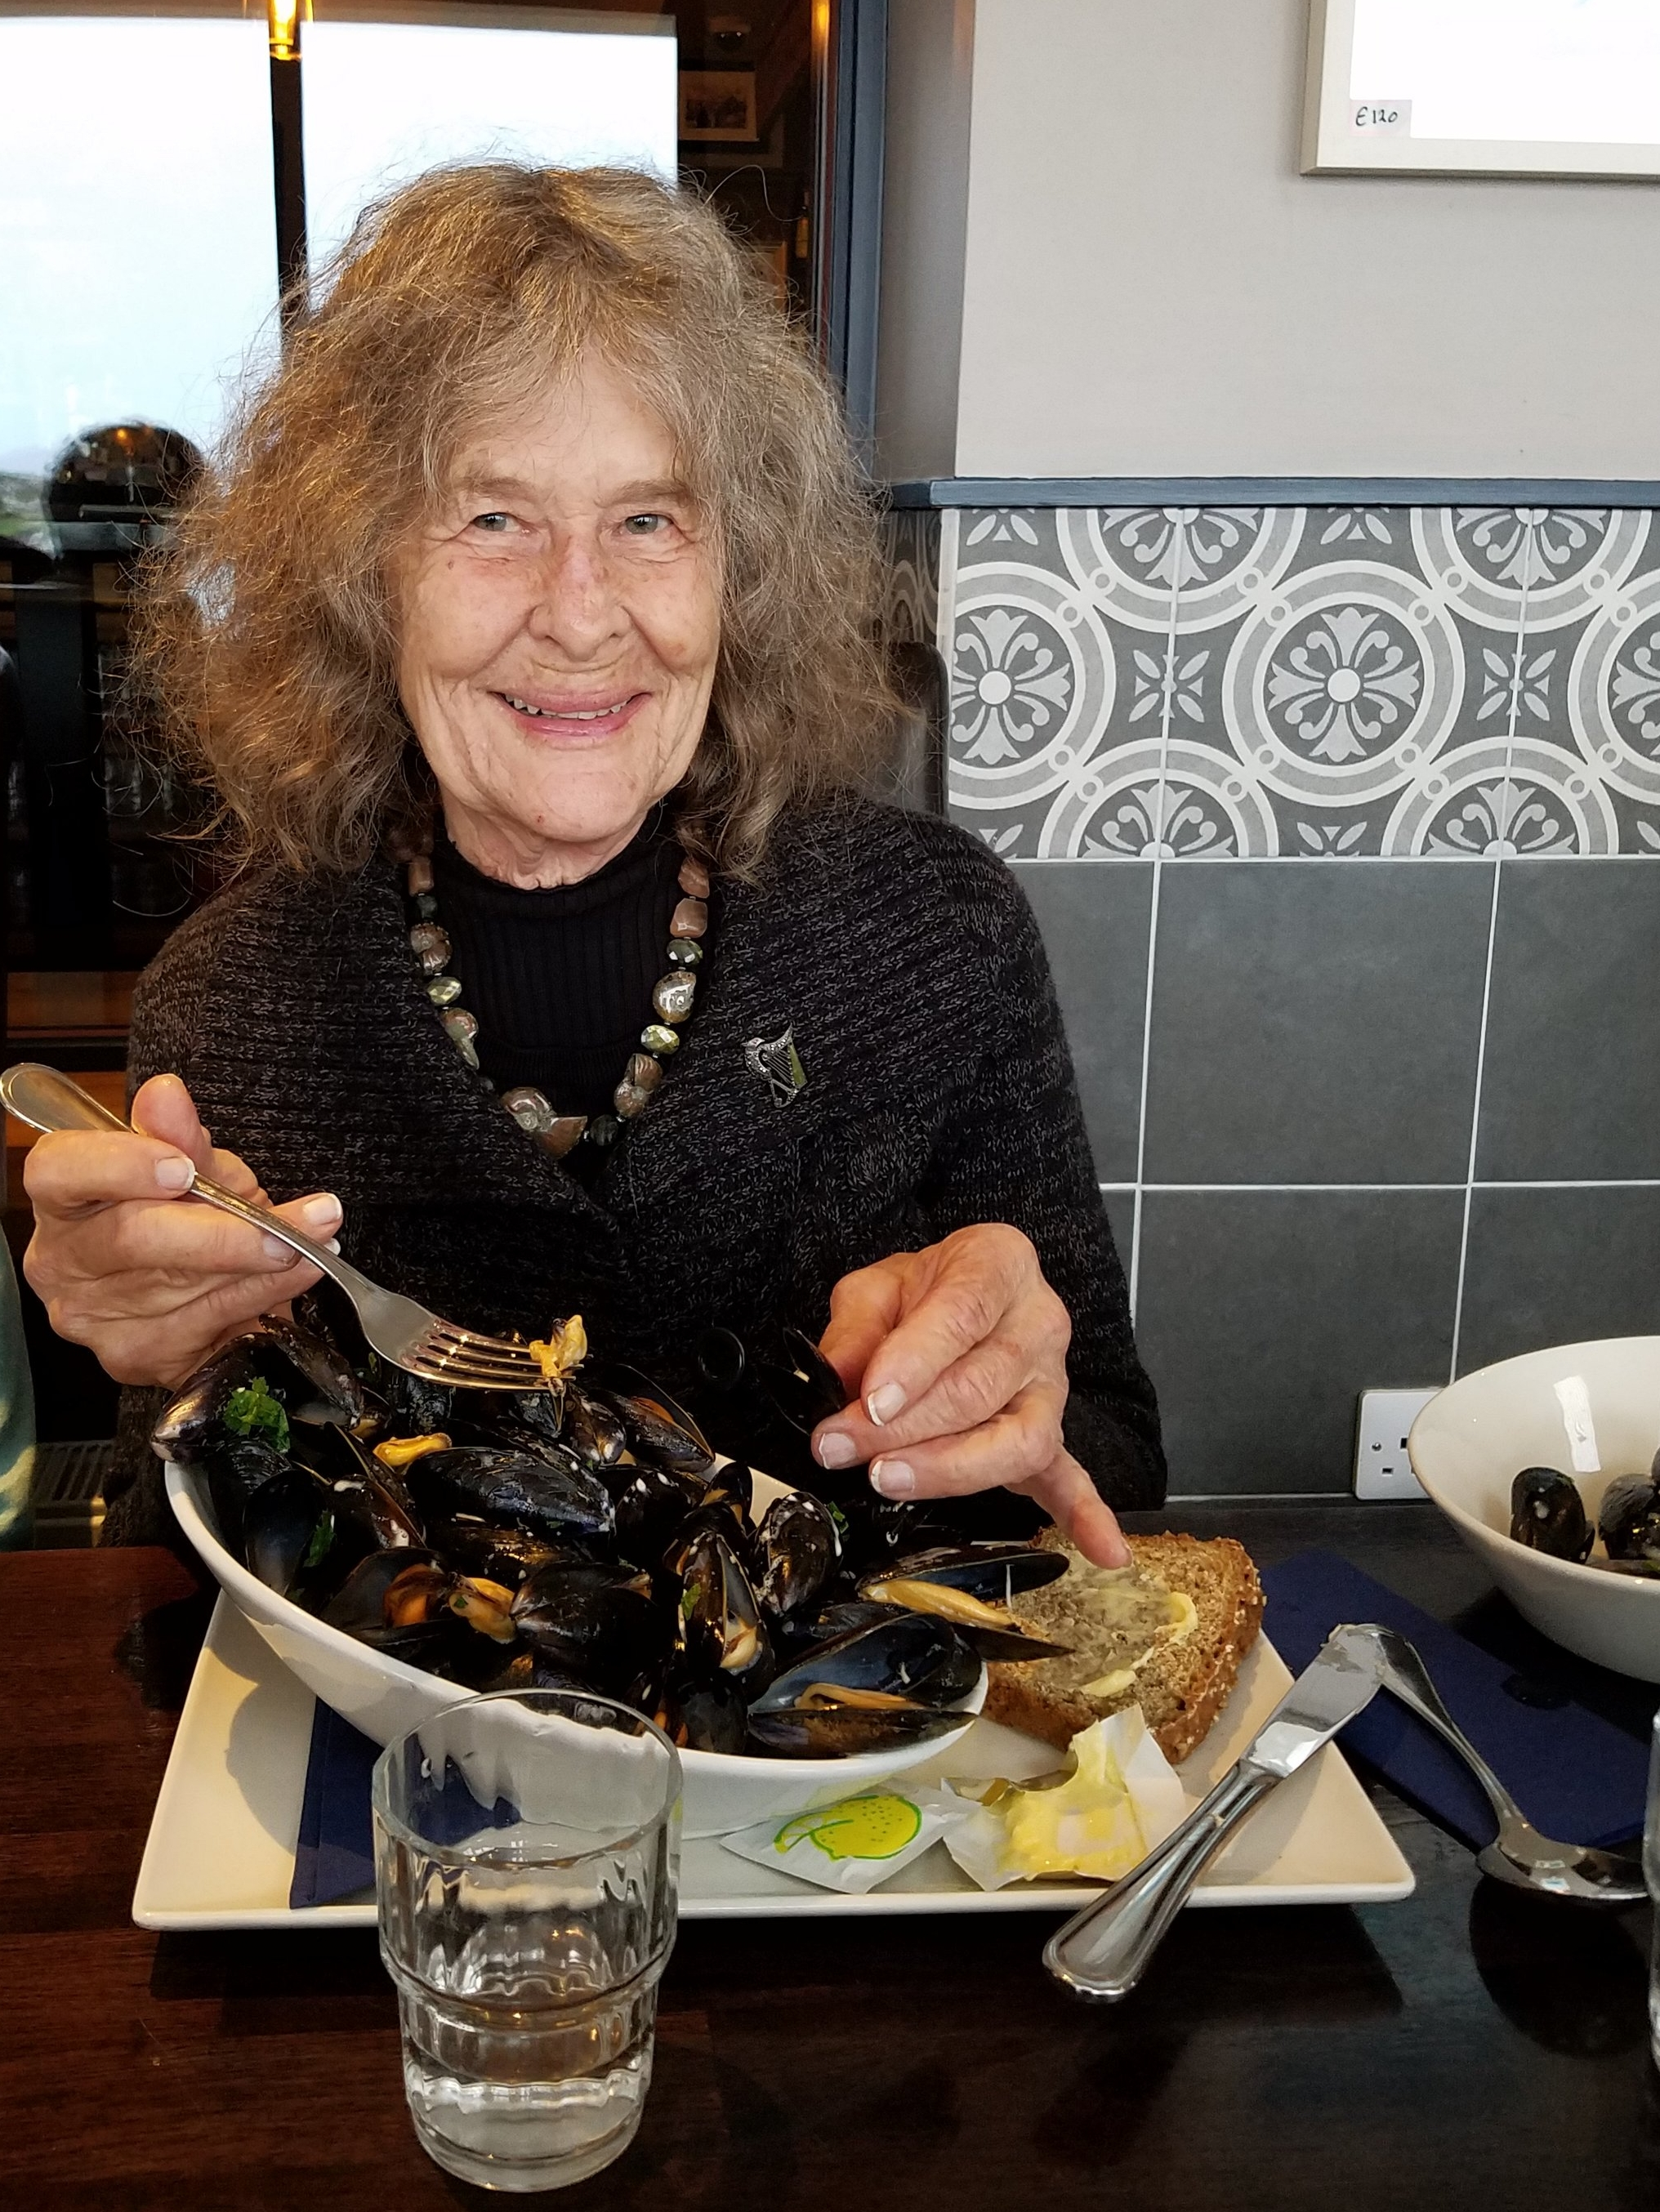 June enjoys the mussels at o'carroll's cove.